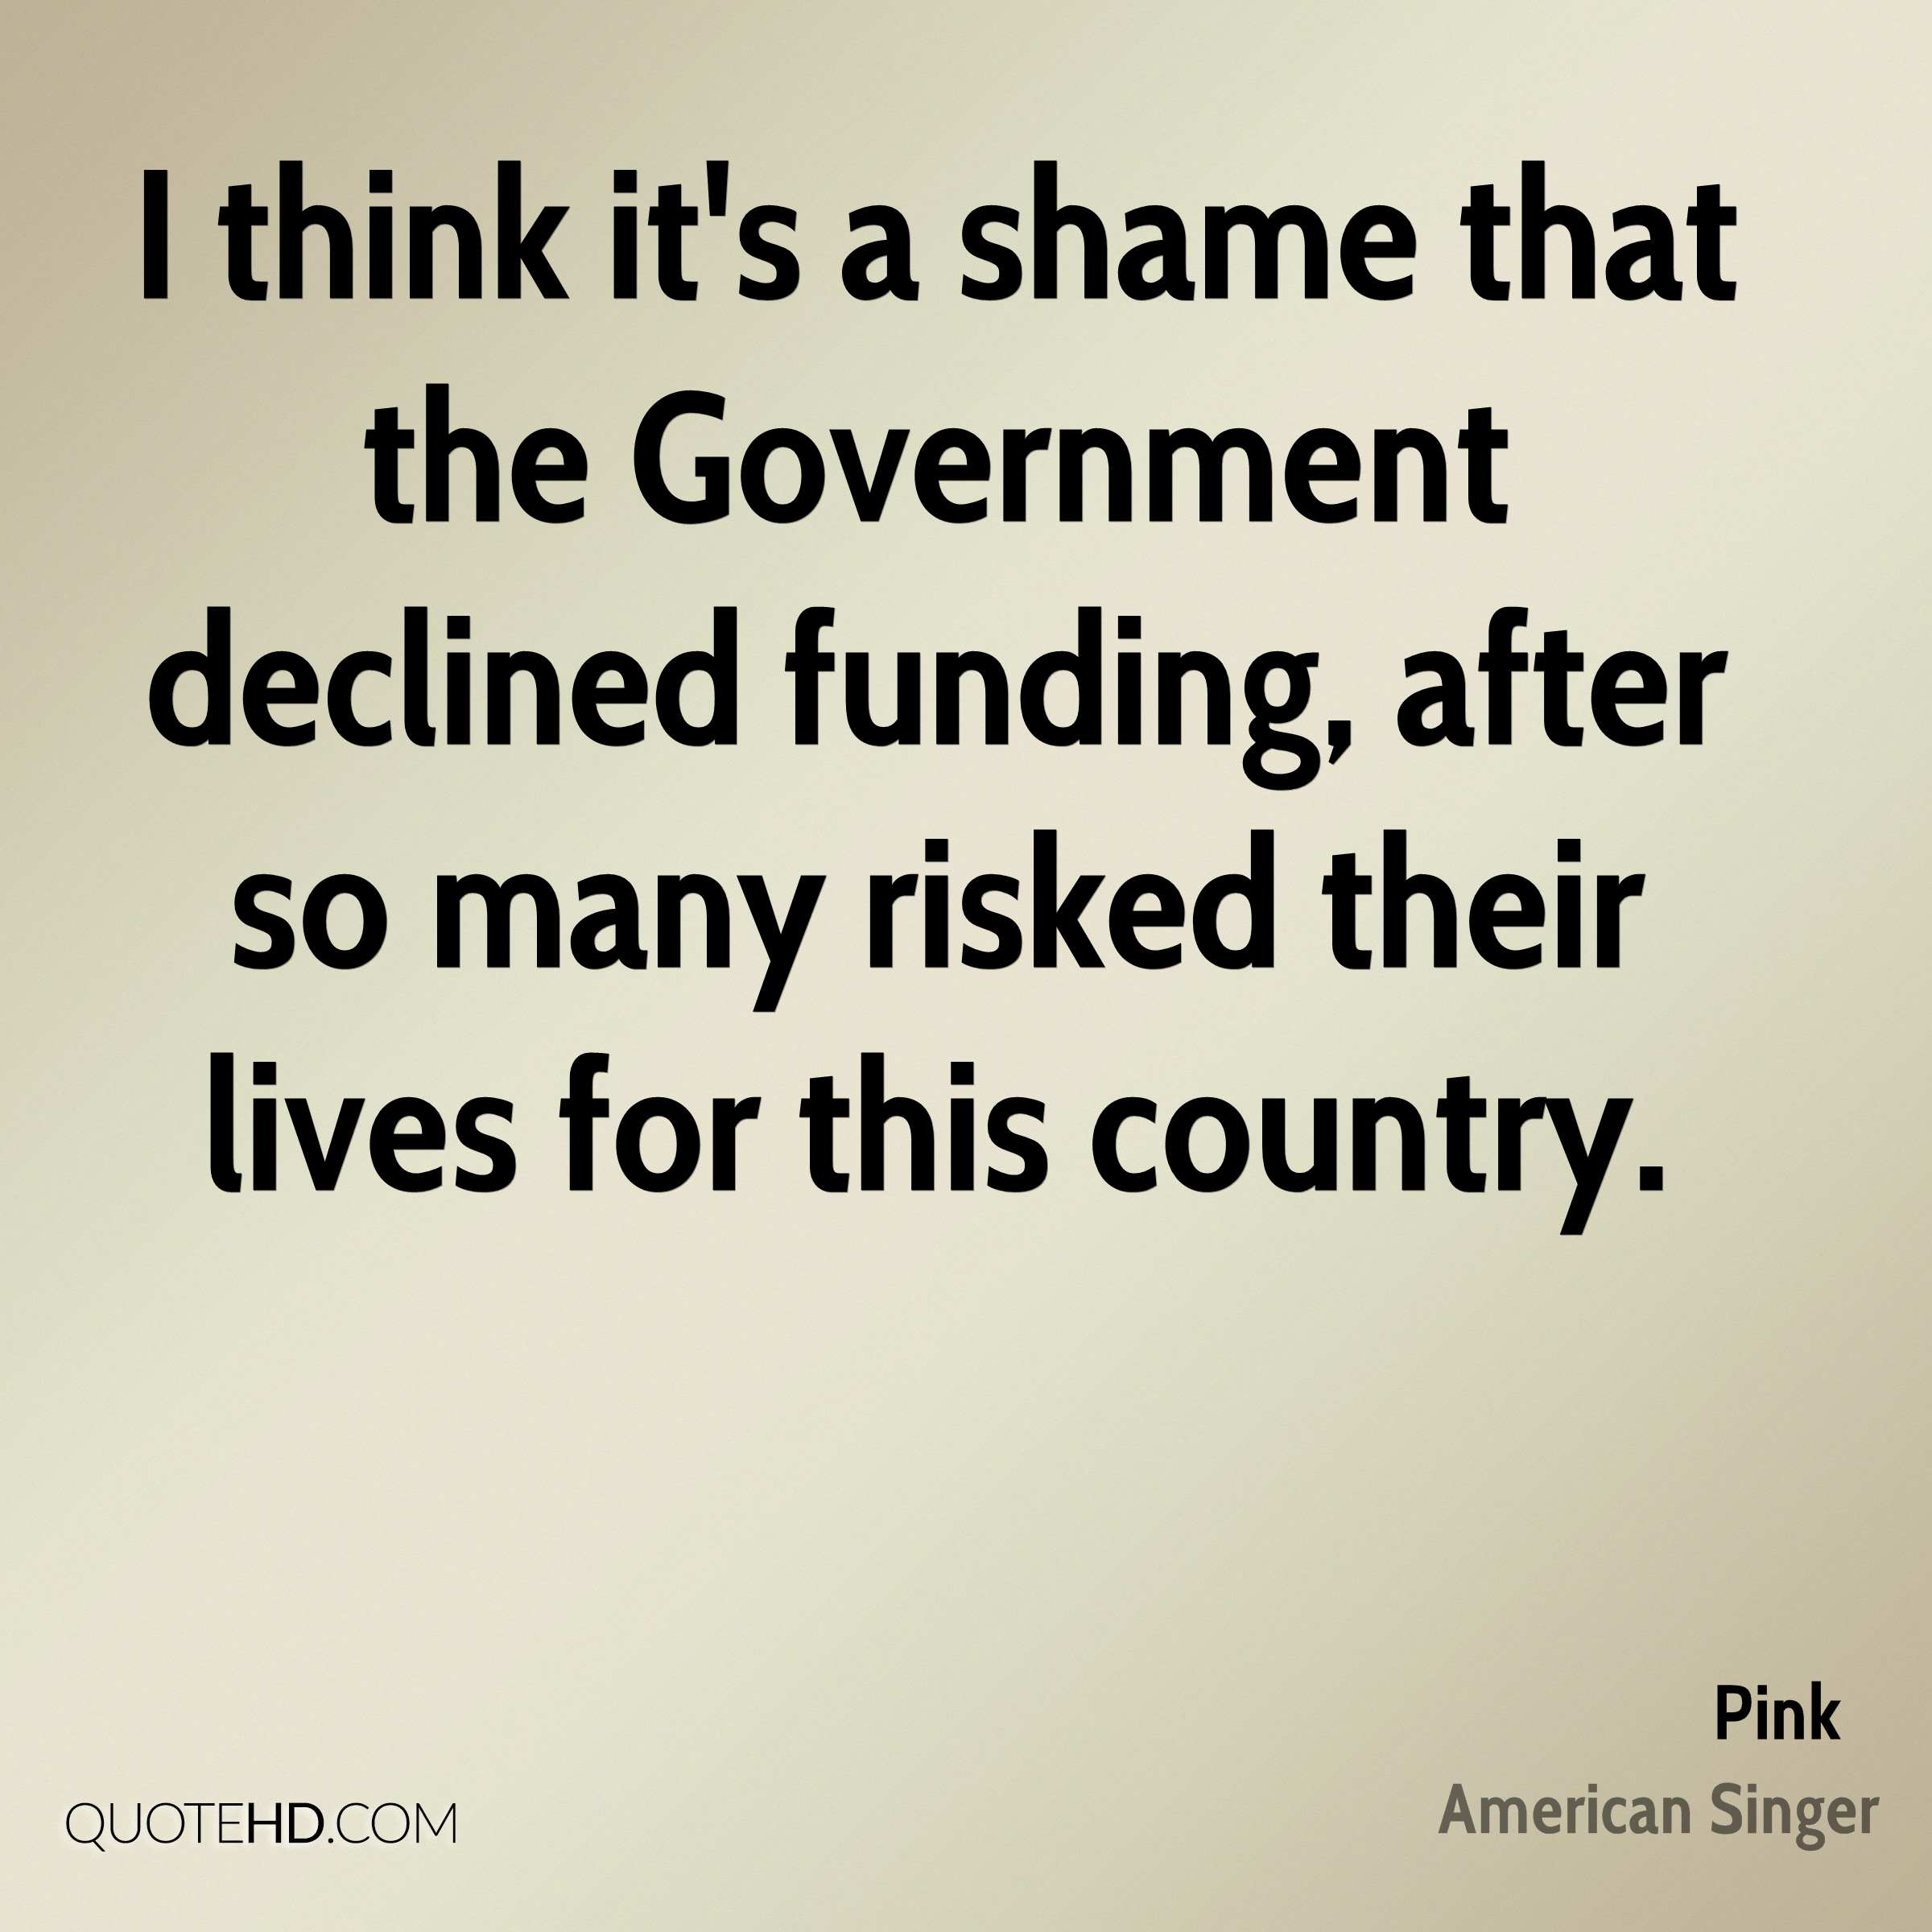 I think it's a shame that the Government declined funding, after so many risked their lives for this country.